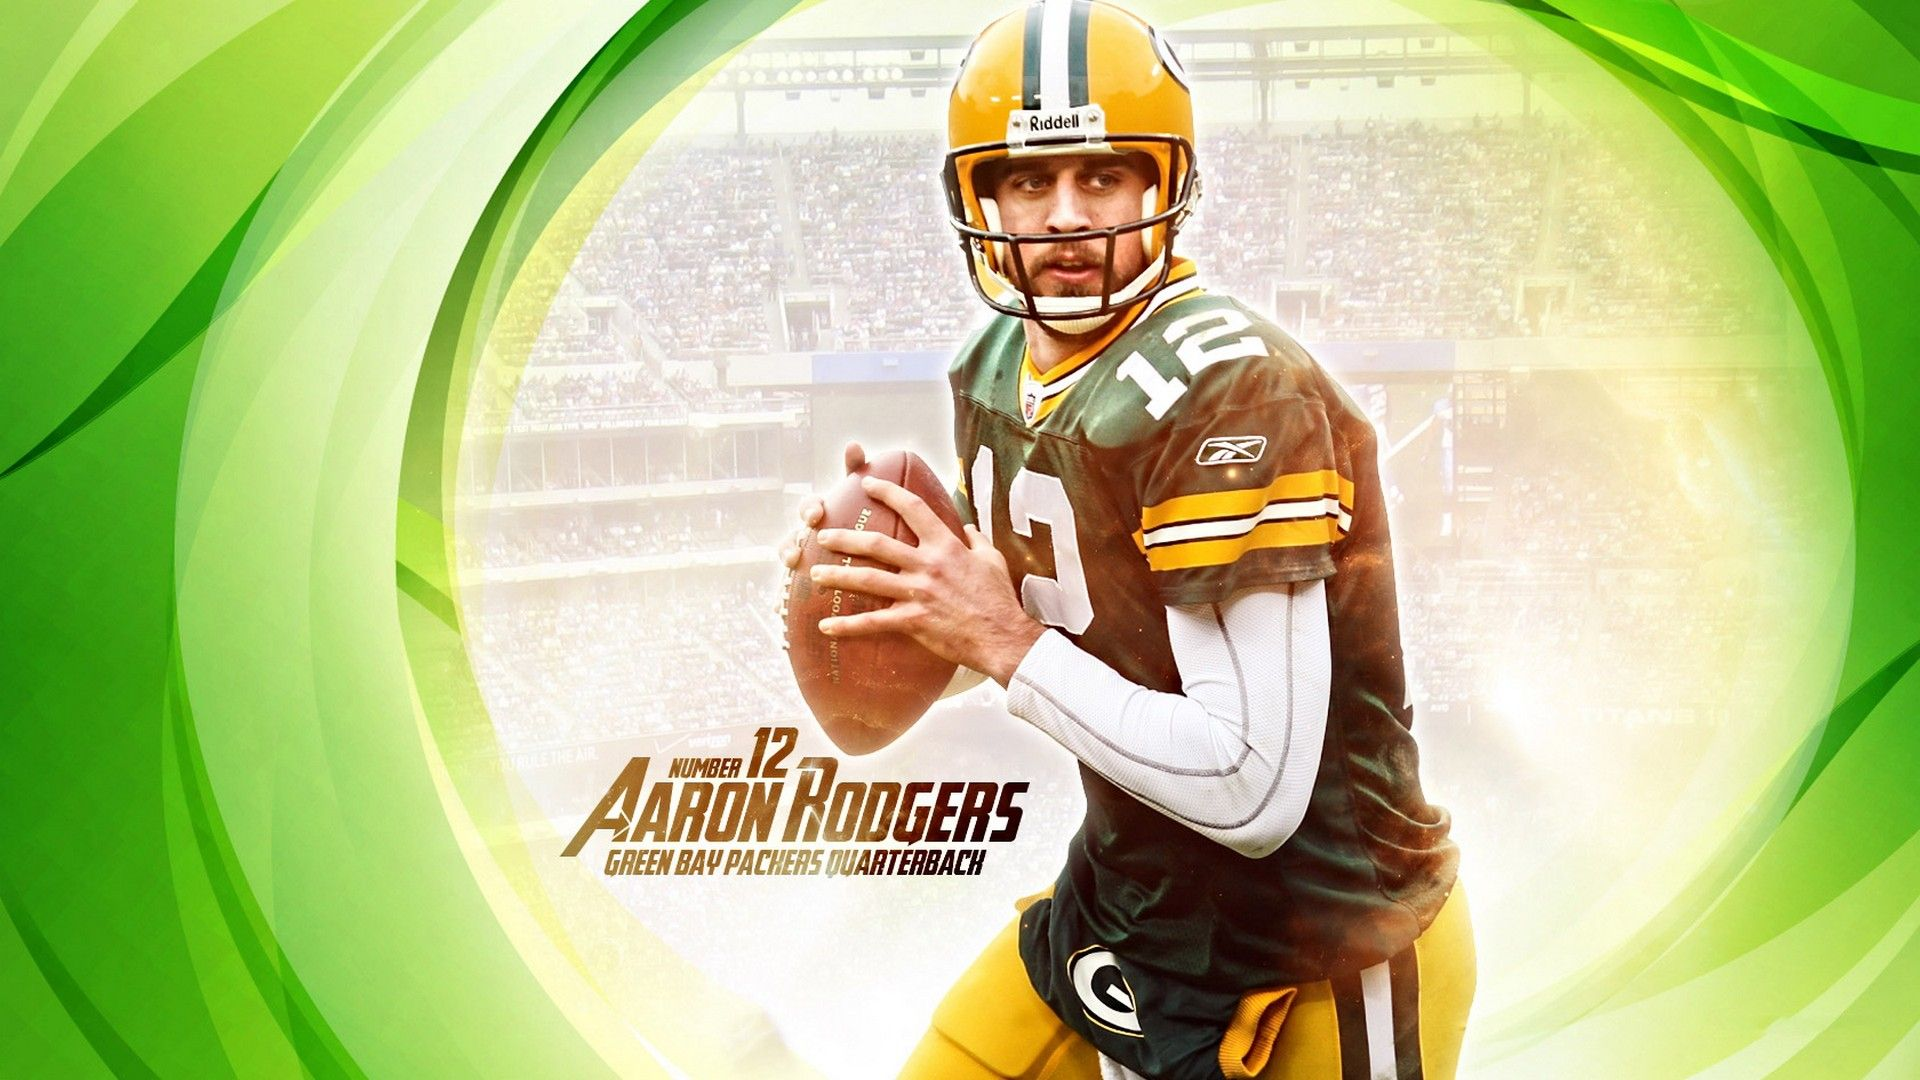 Aaron Rodgers Hd Wallpapers 2021 Nfl Football Wallpapers Nfl Football Wallpaper Nfl Football Nfl